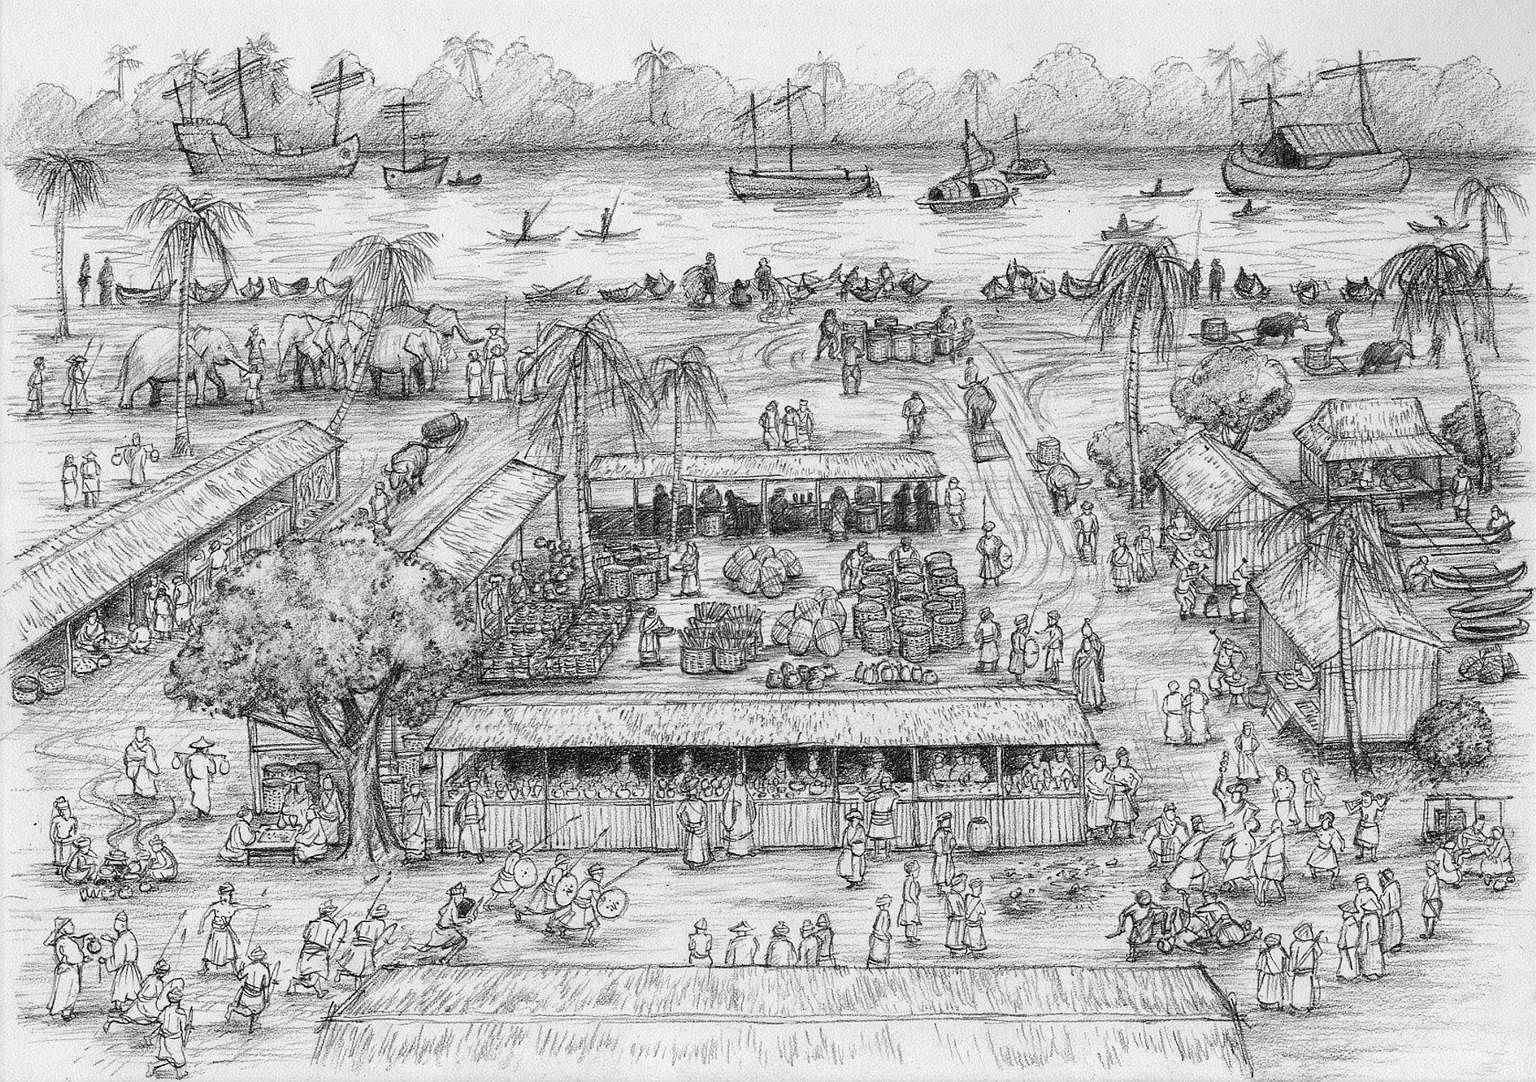 Before the pubs and restaurants moved in, coolies along the banks of the Singapore River in 1960 looked to storytellers for entertainment. Scenes from The Bicentennial Experience at Fort Canning Centre will include a depiction of Raffles and hi